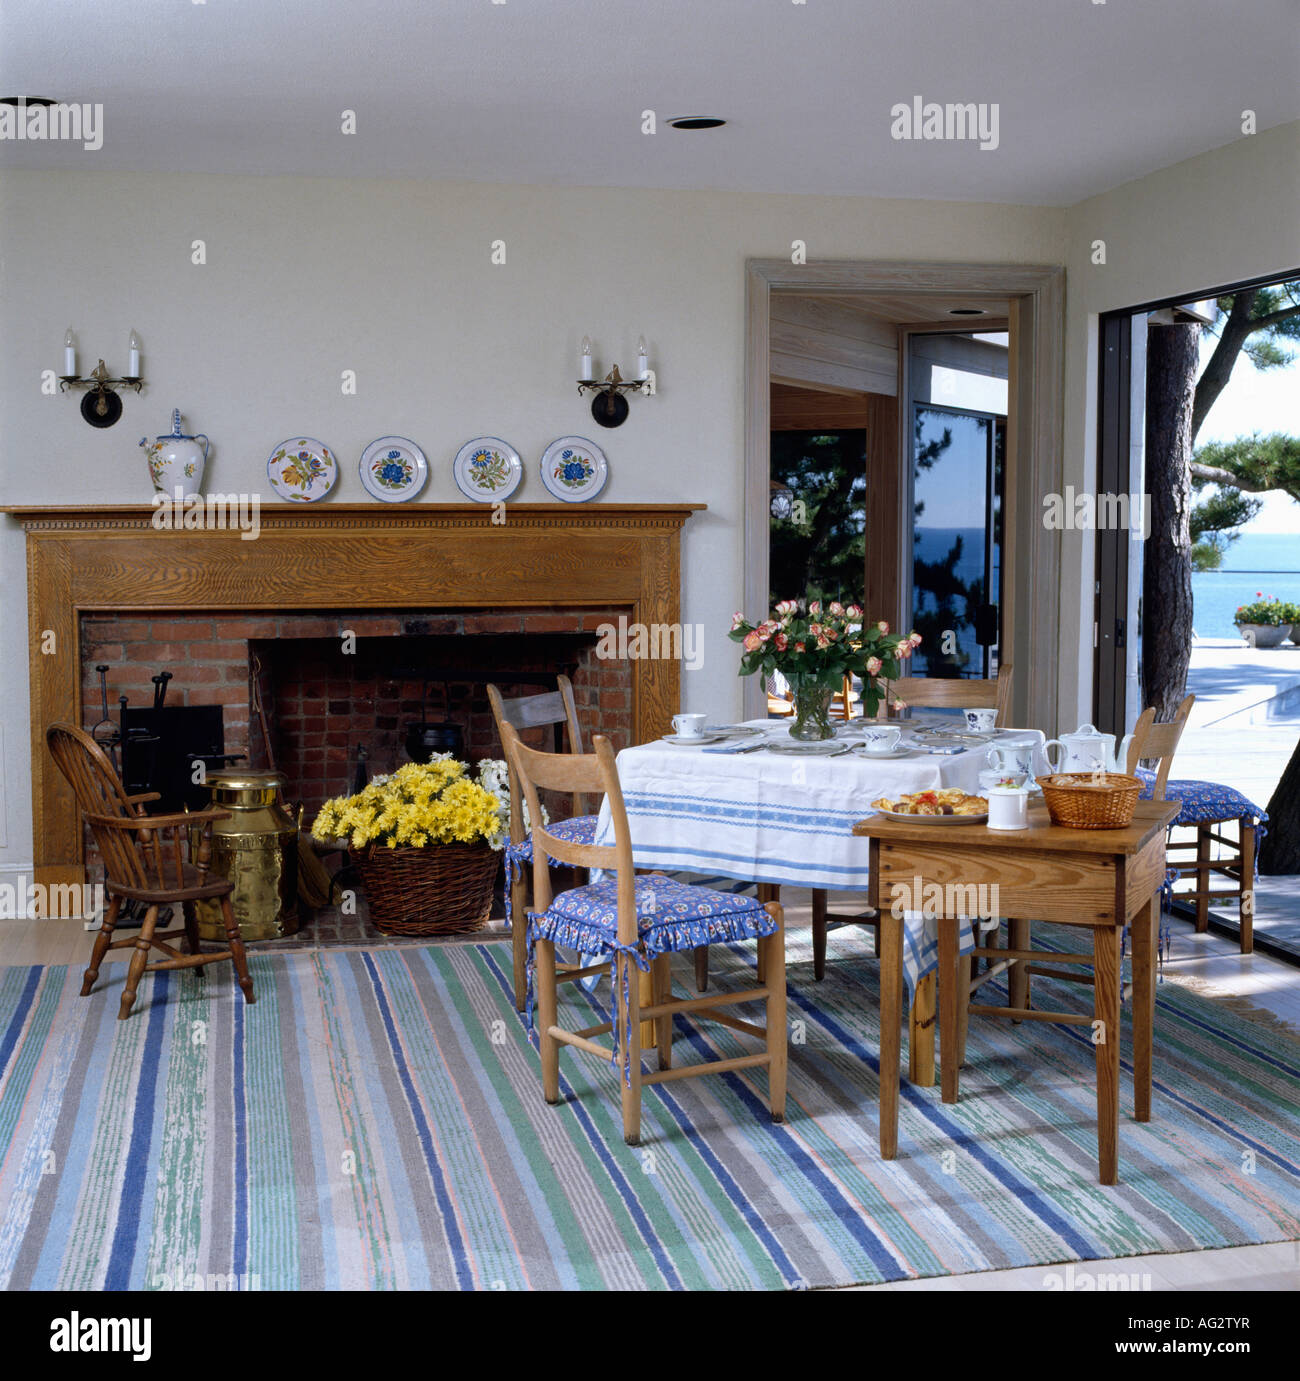 Seaside Dining Room With Wooden Fireplace And Pastel Blue Striped Carpet View Of The Ocean Through Glass Doors